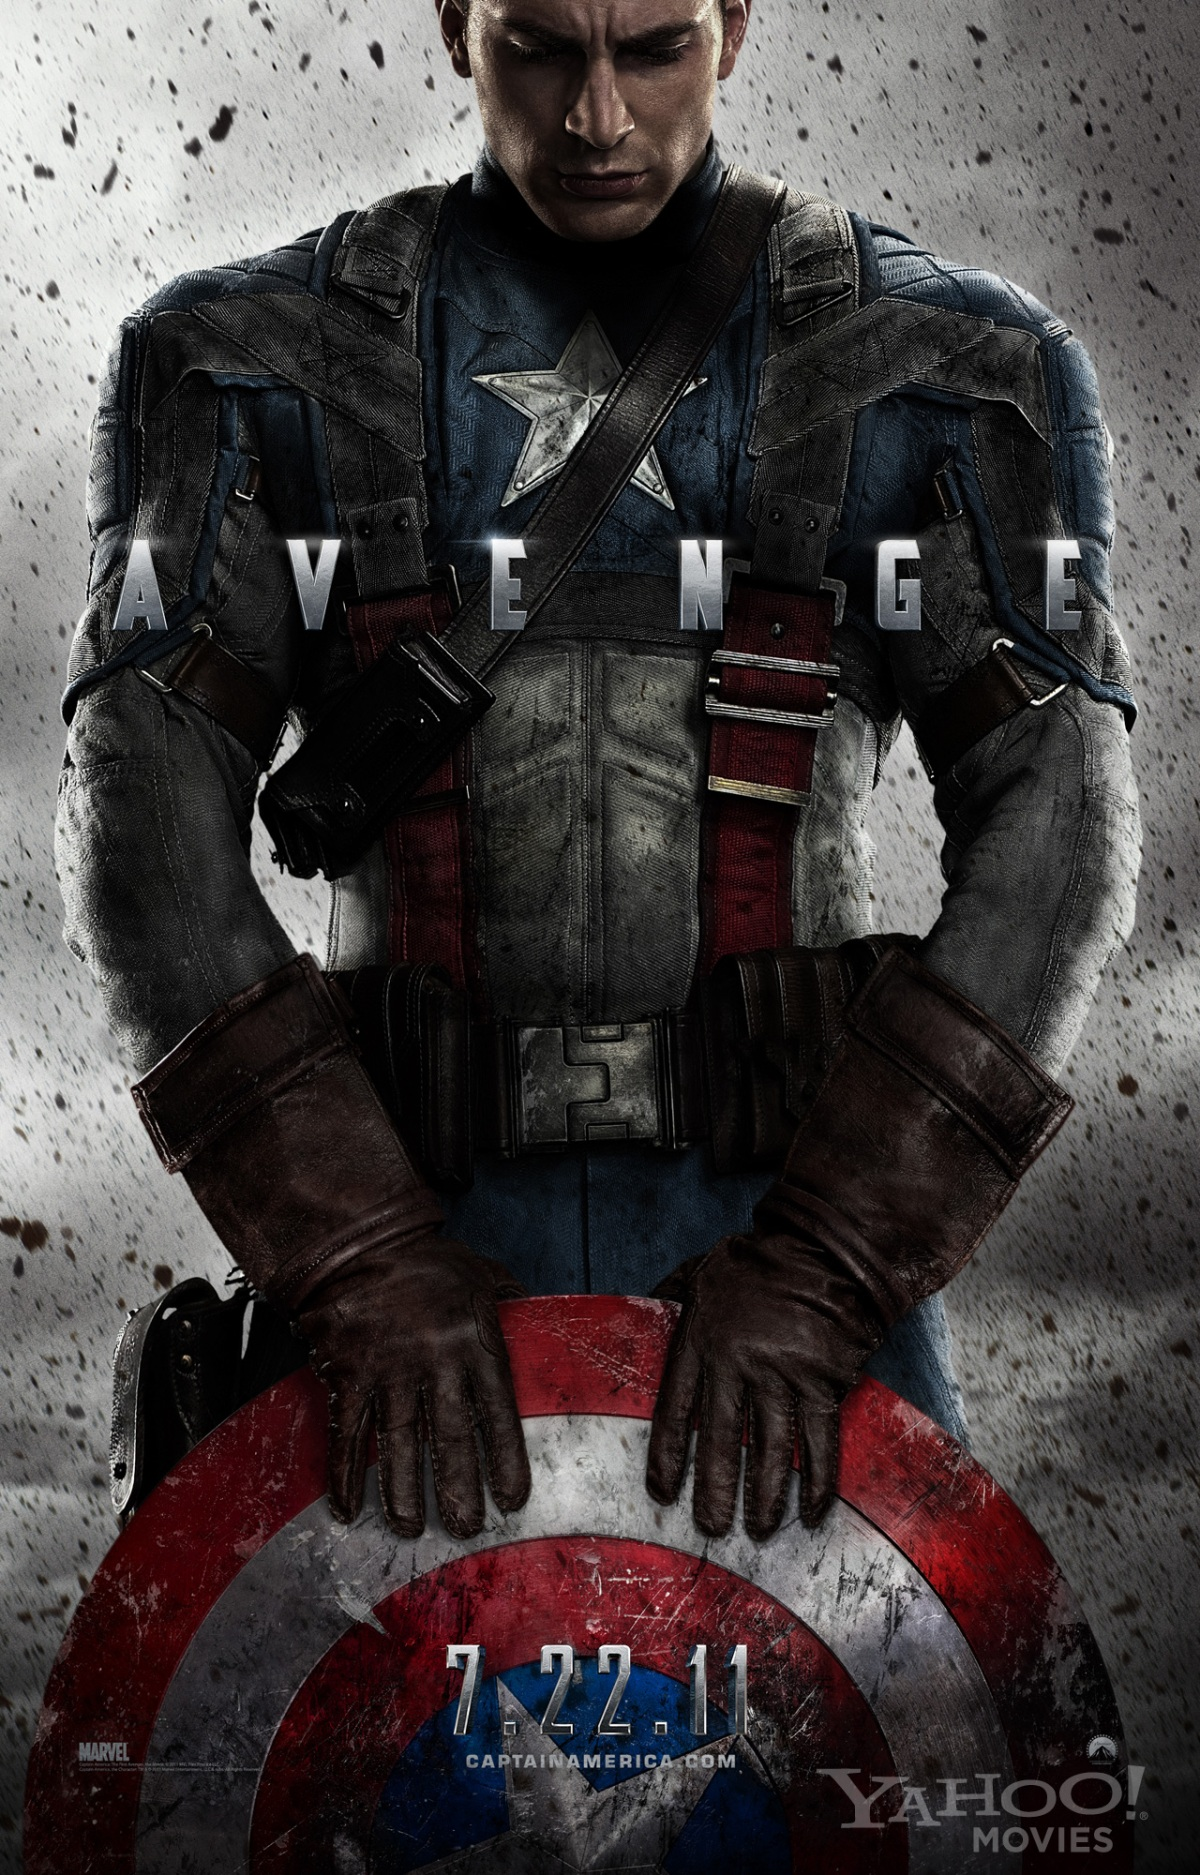 G3 Review: Captain America: The FirstAvenger